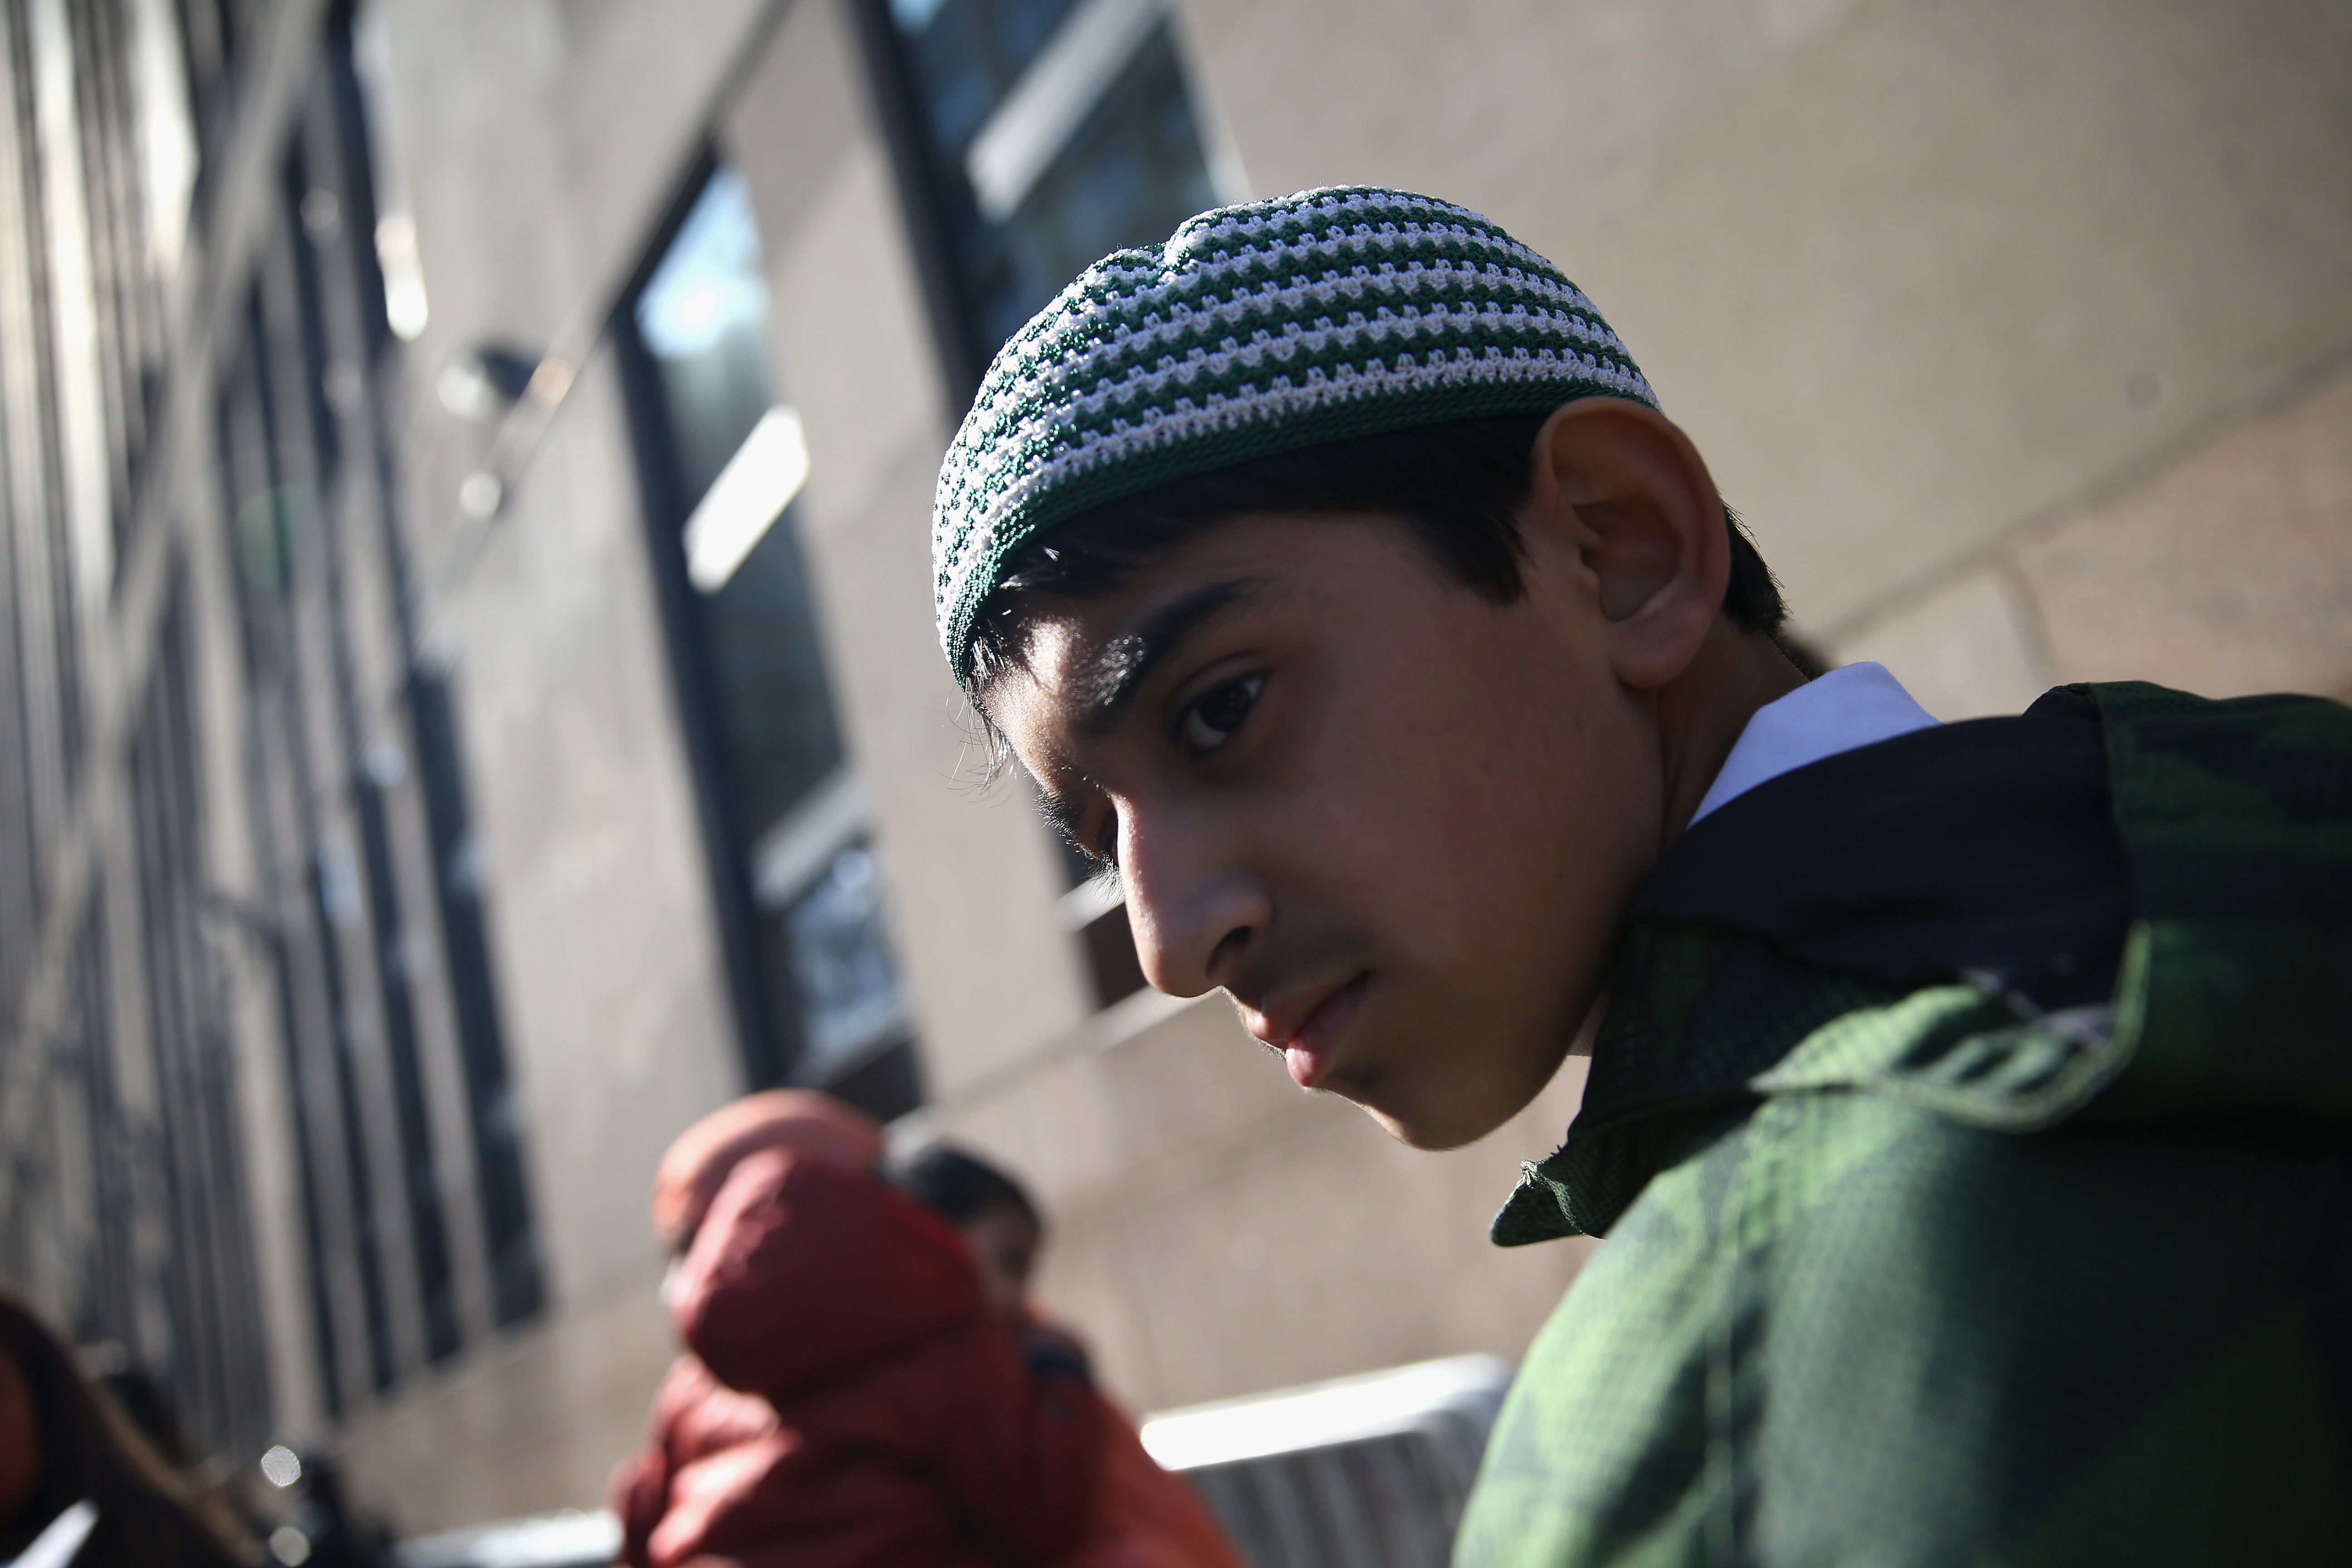 Bangladeshi-American 13-year-old Mohammad Khan stands outside of ICE in NYC